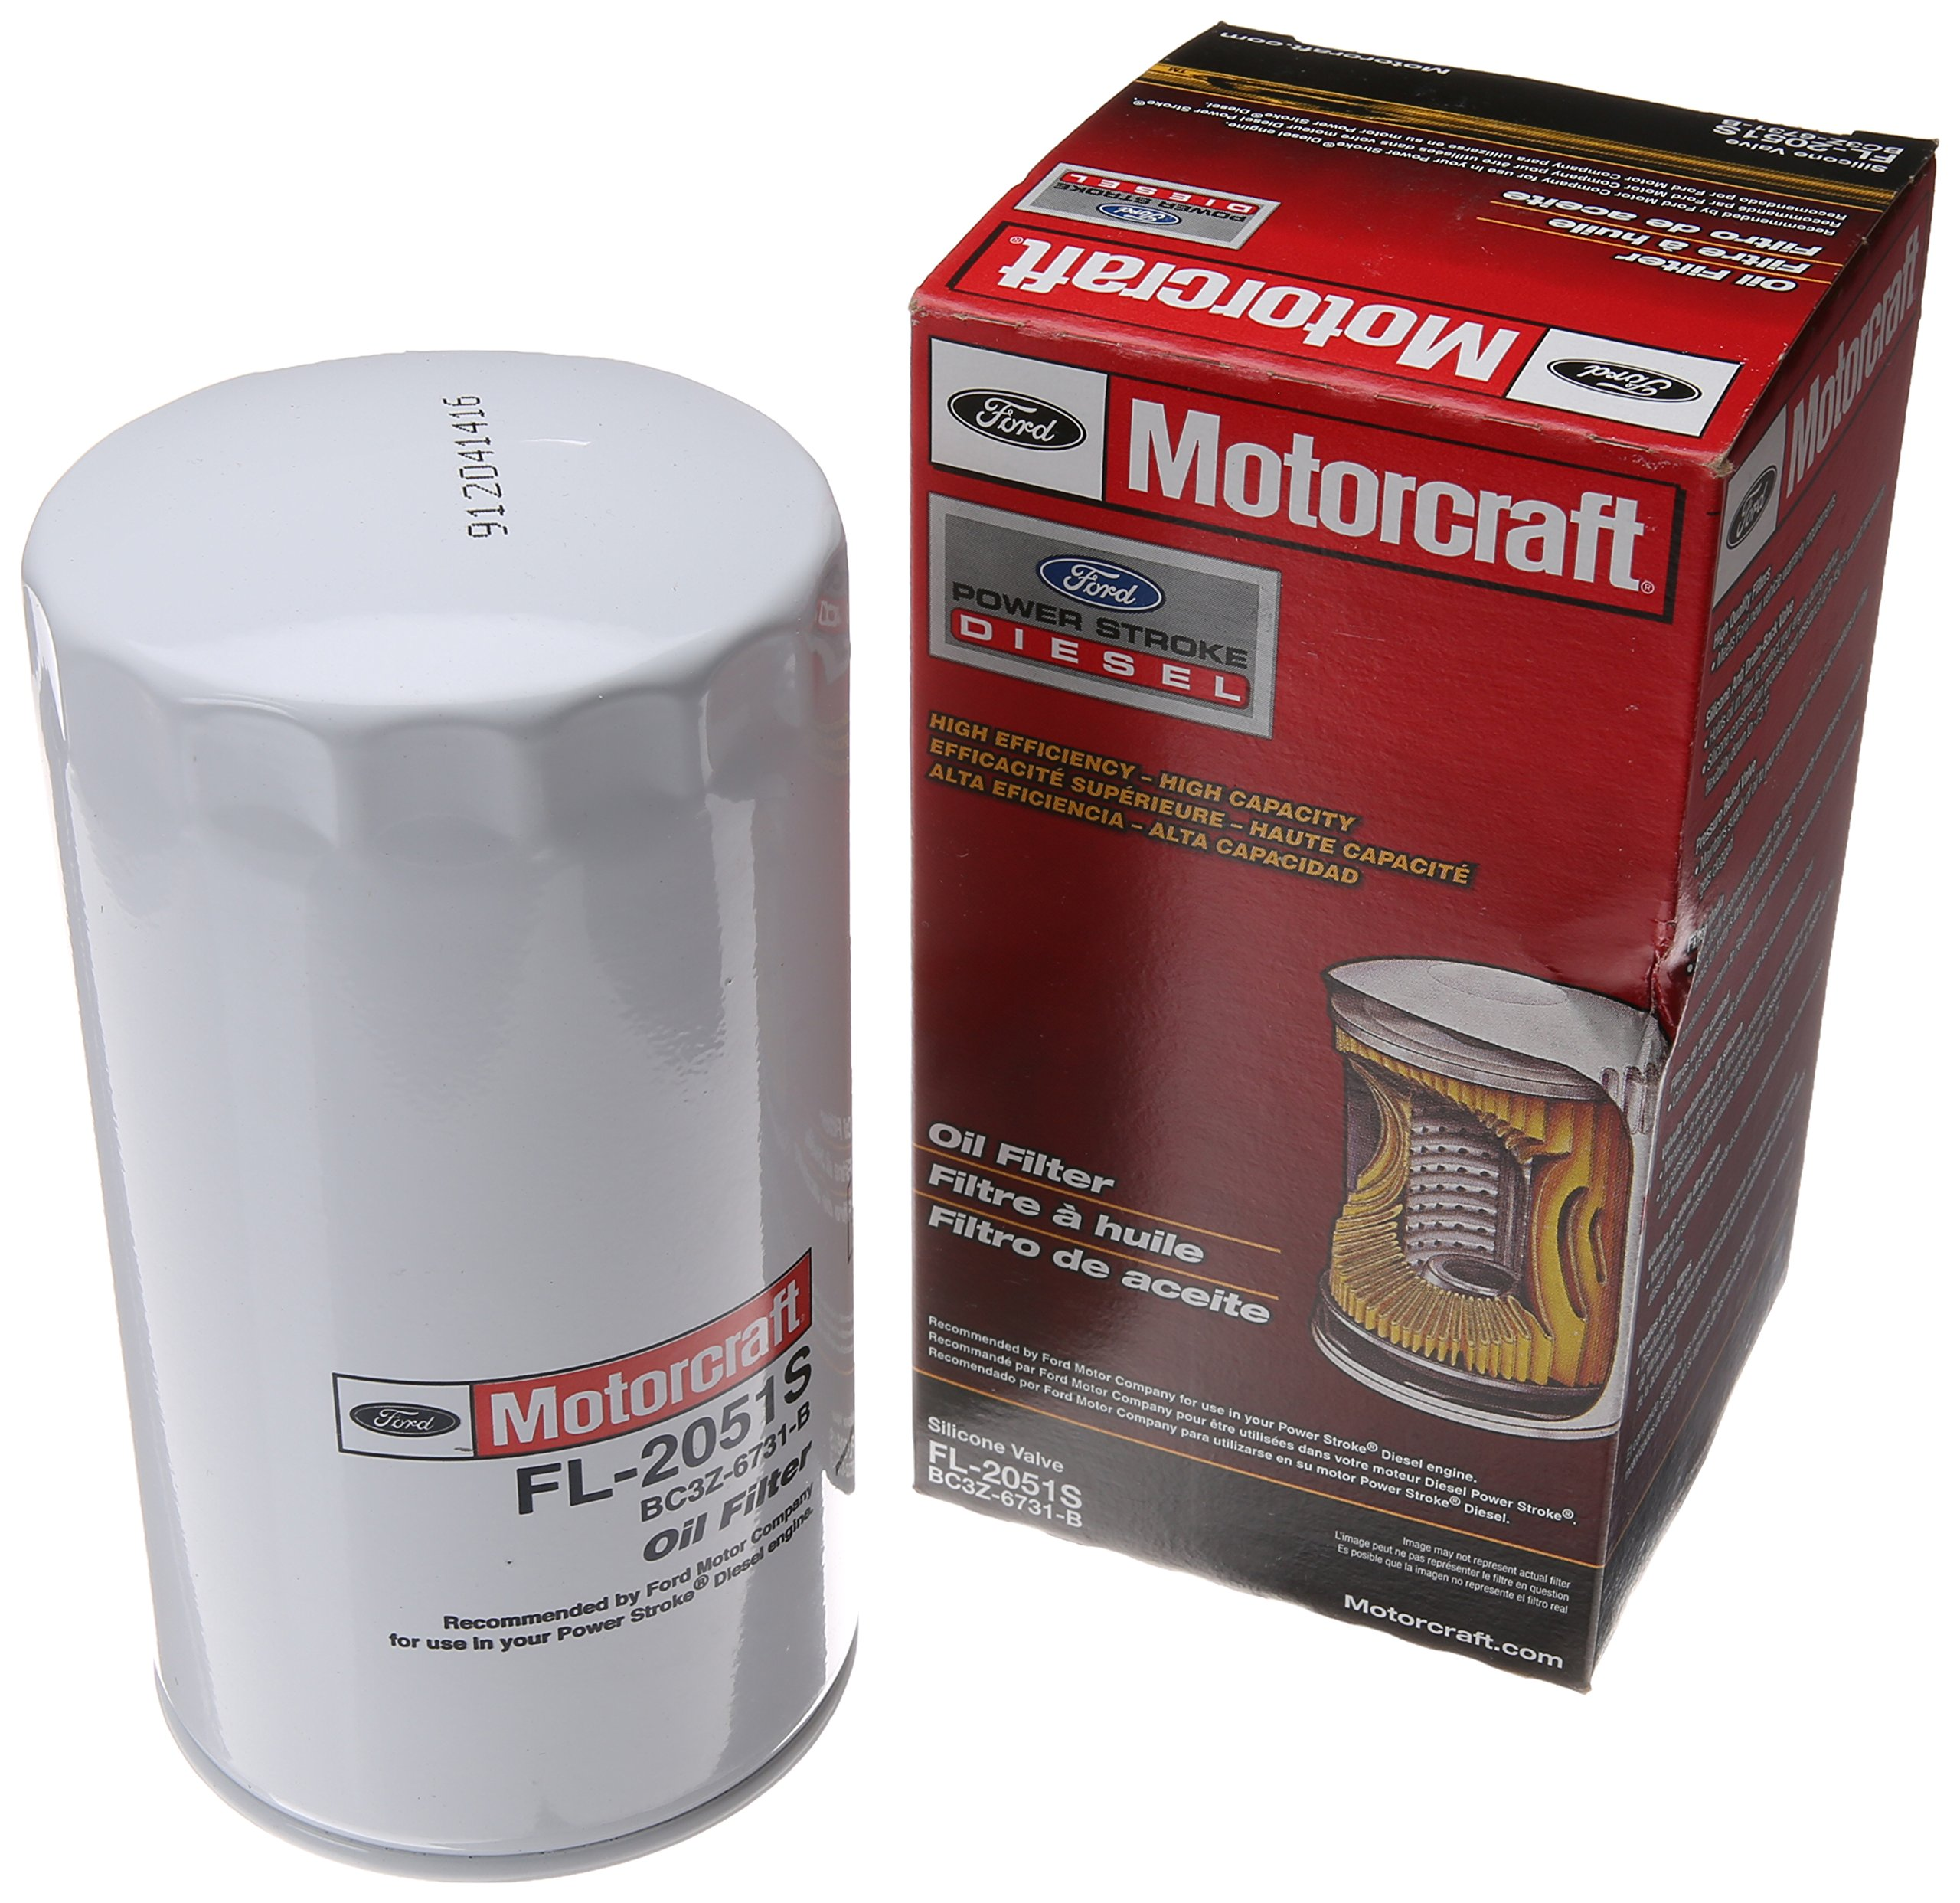 Motorcraft FL2051S Oil Filter by Motorcraft